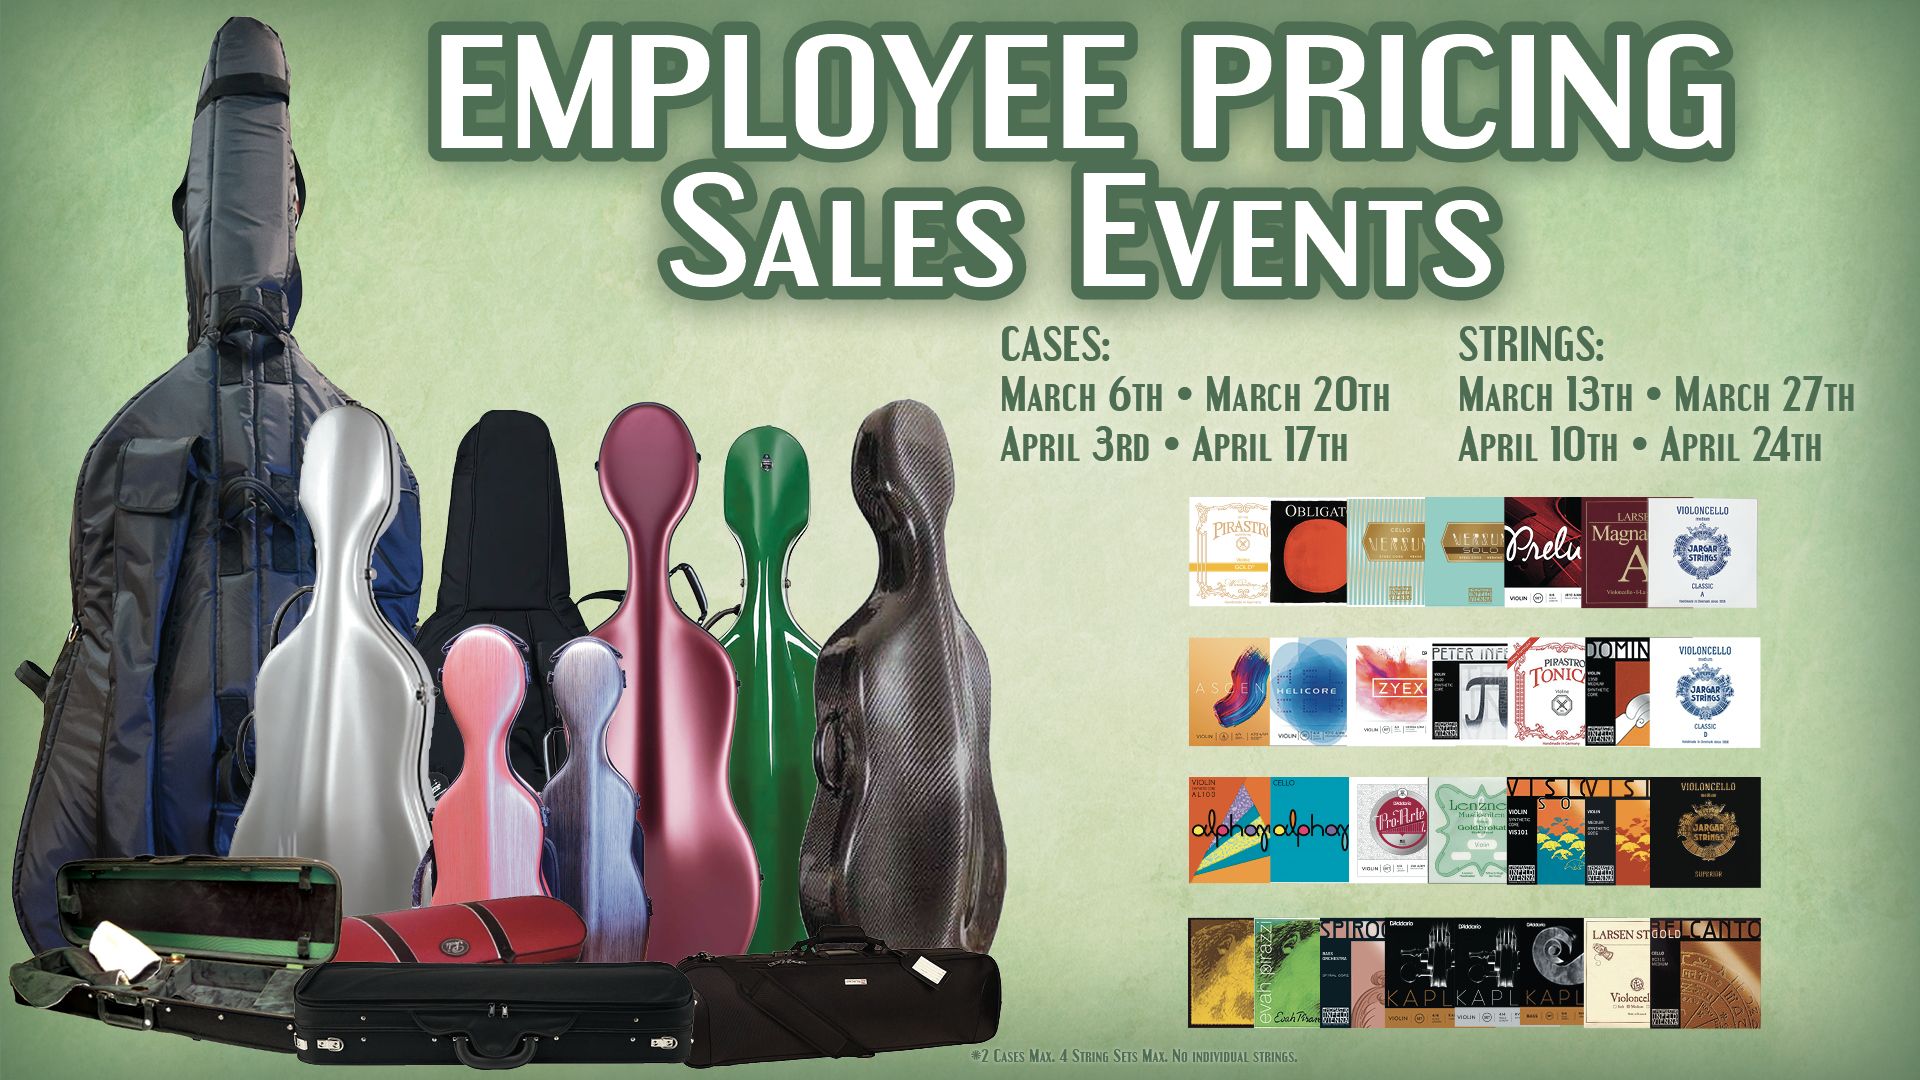 Employee Pricing Sales Events, Cases: March 6th, March 20th, April 3rd, April 17th; Strings: March 13th, March 27th, April 10th, April 24th